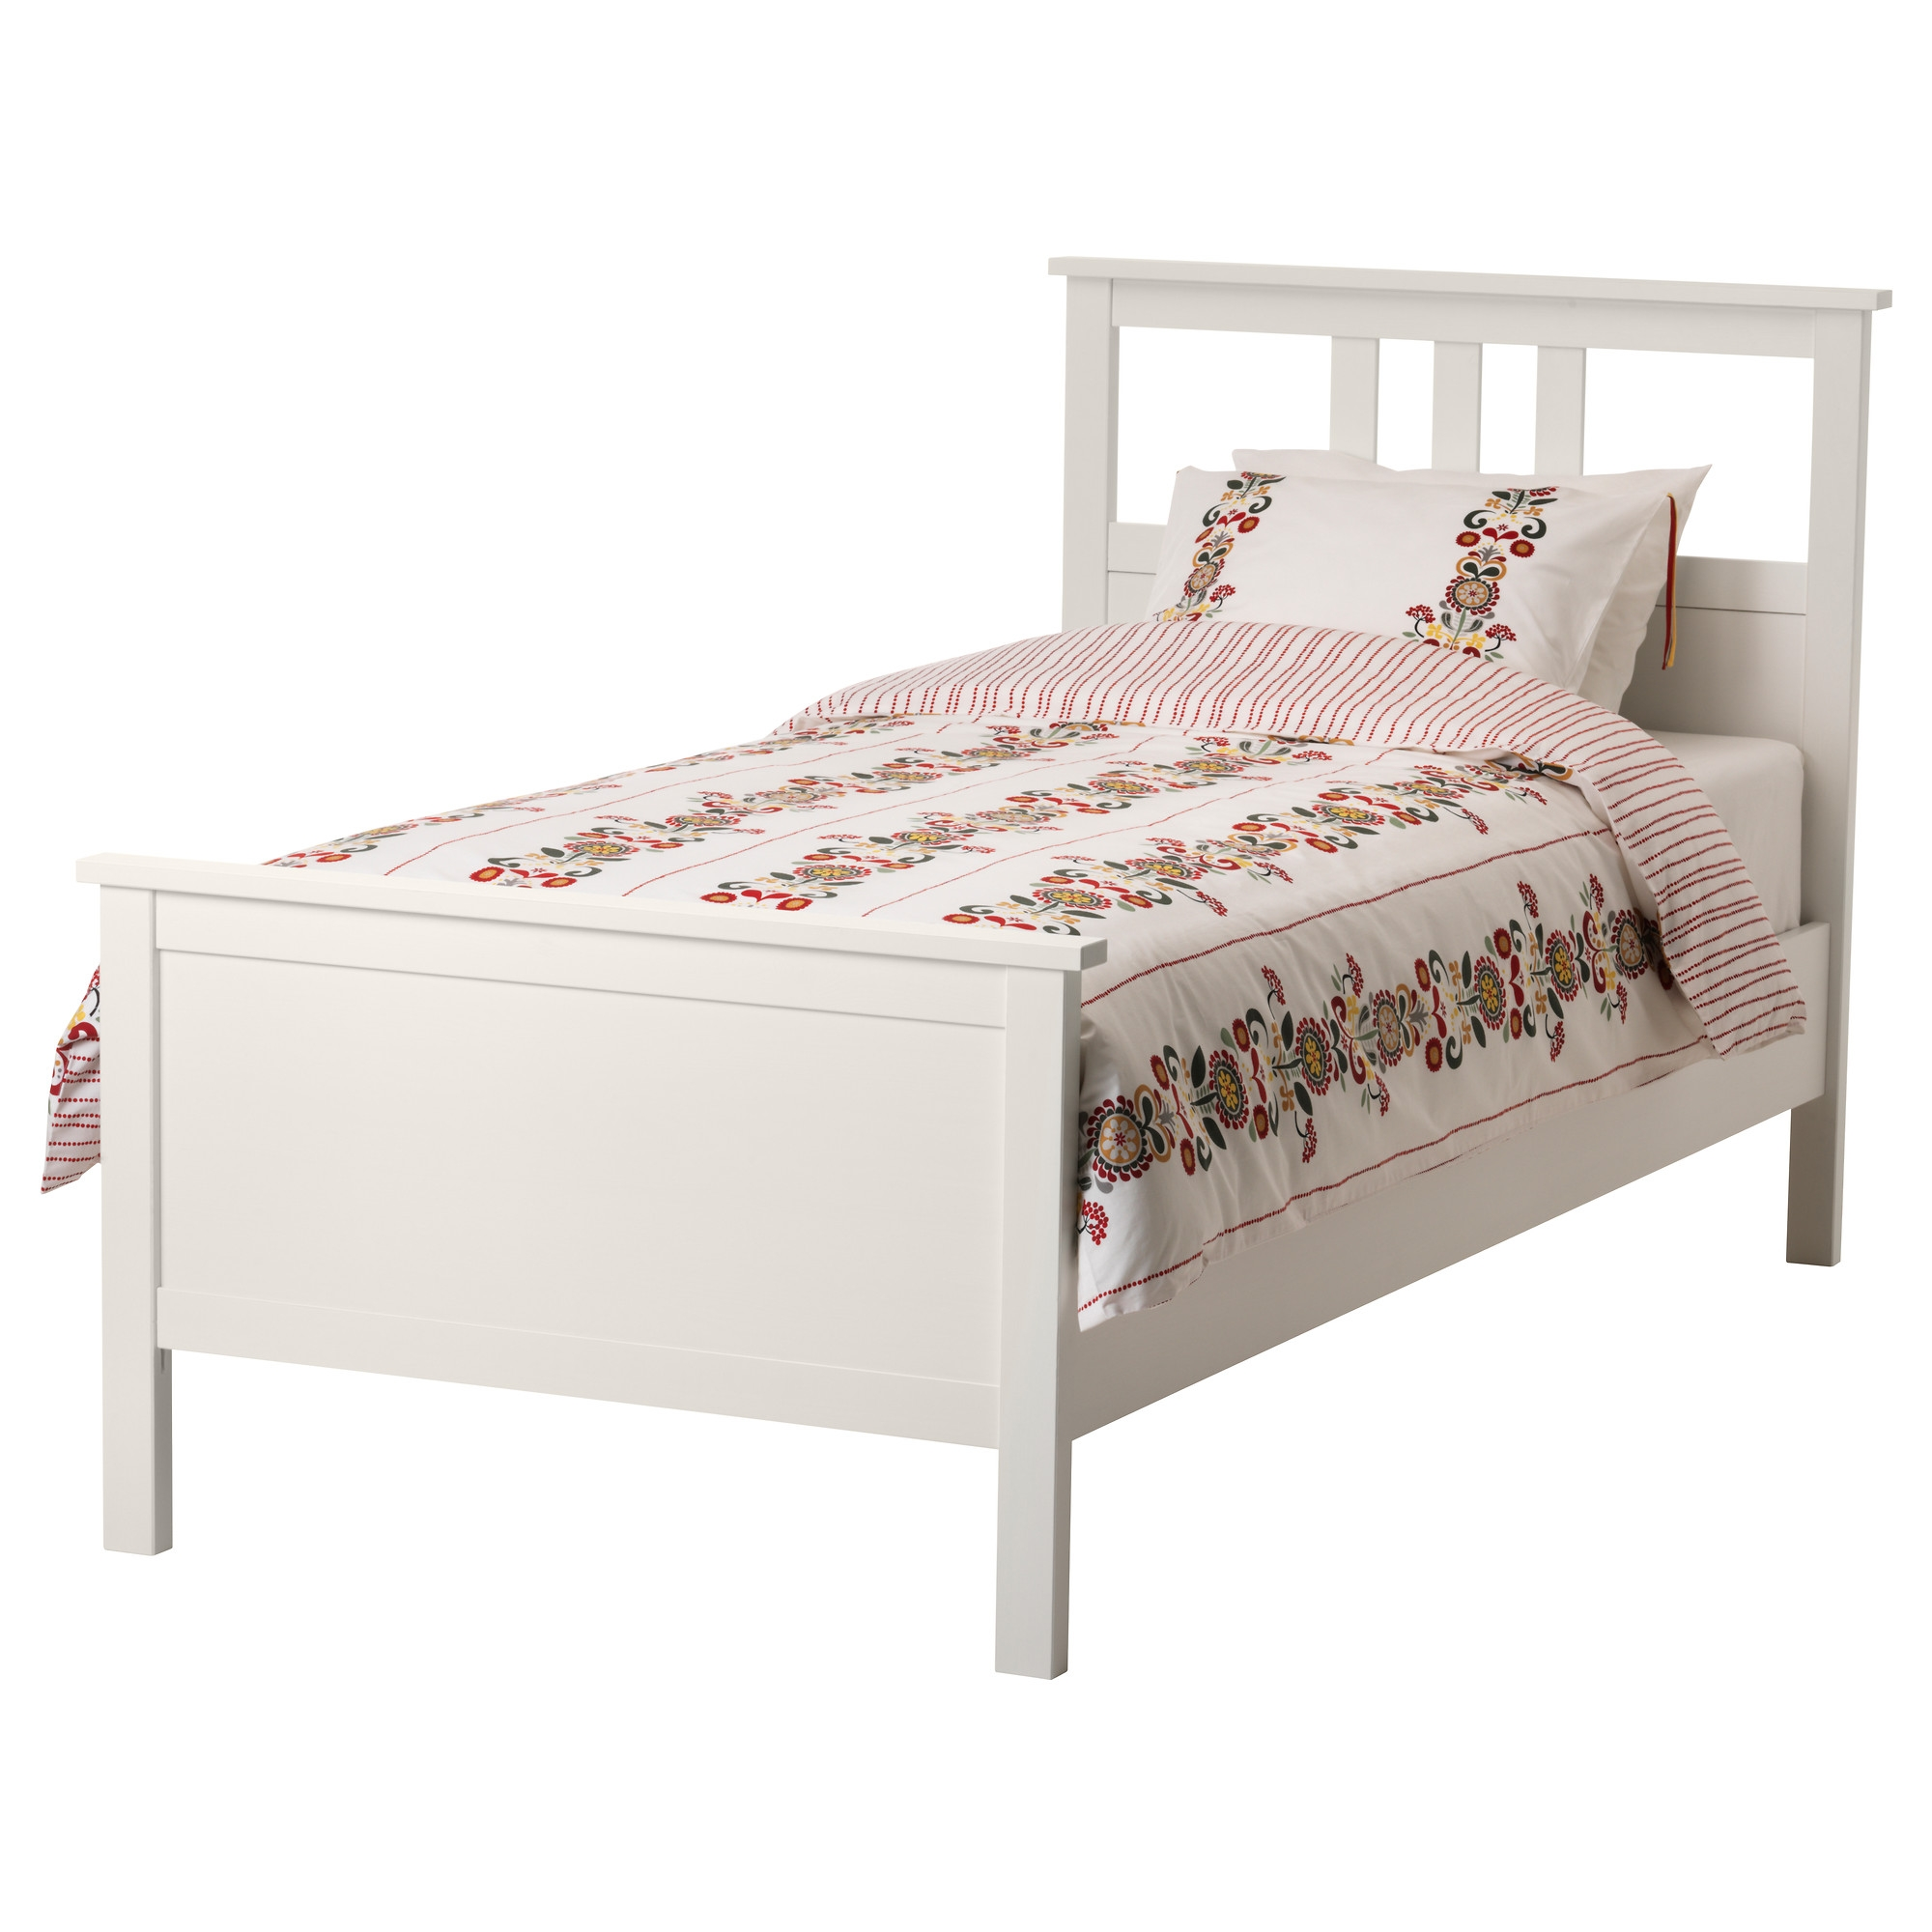 HEMNES Twin bed frame